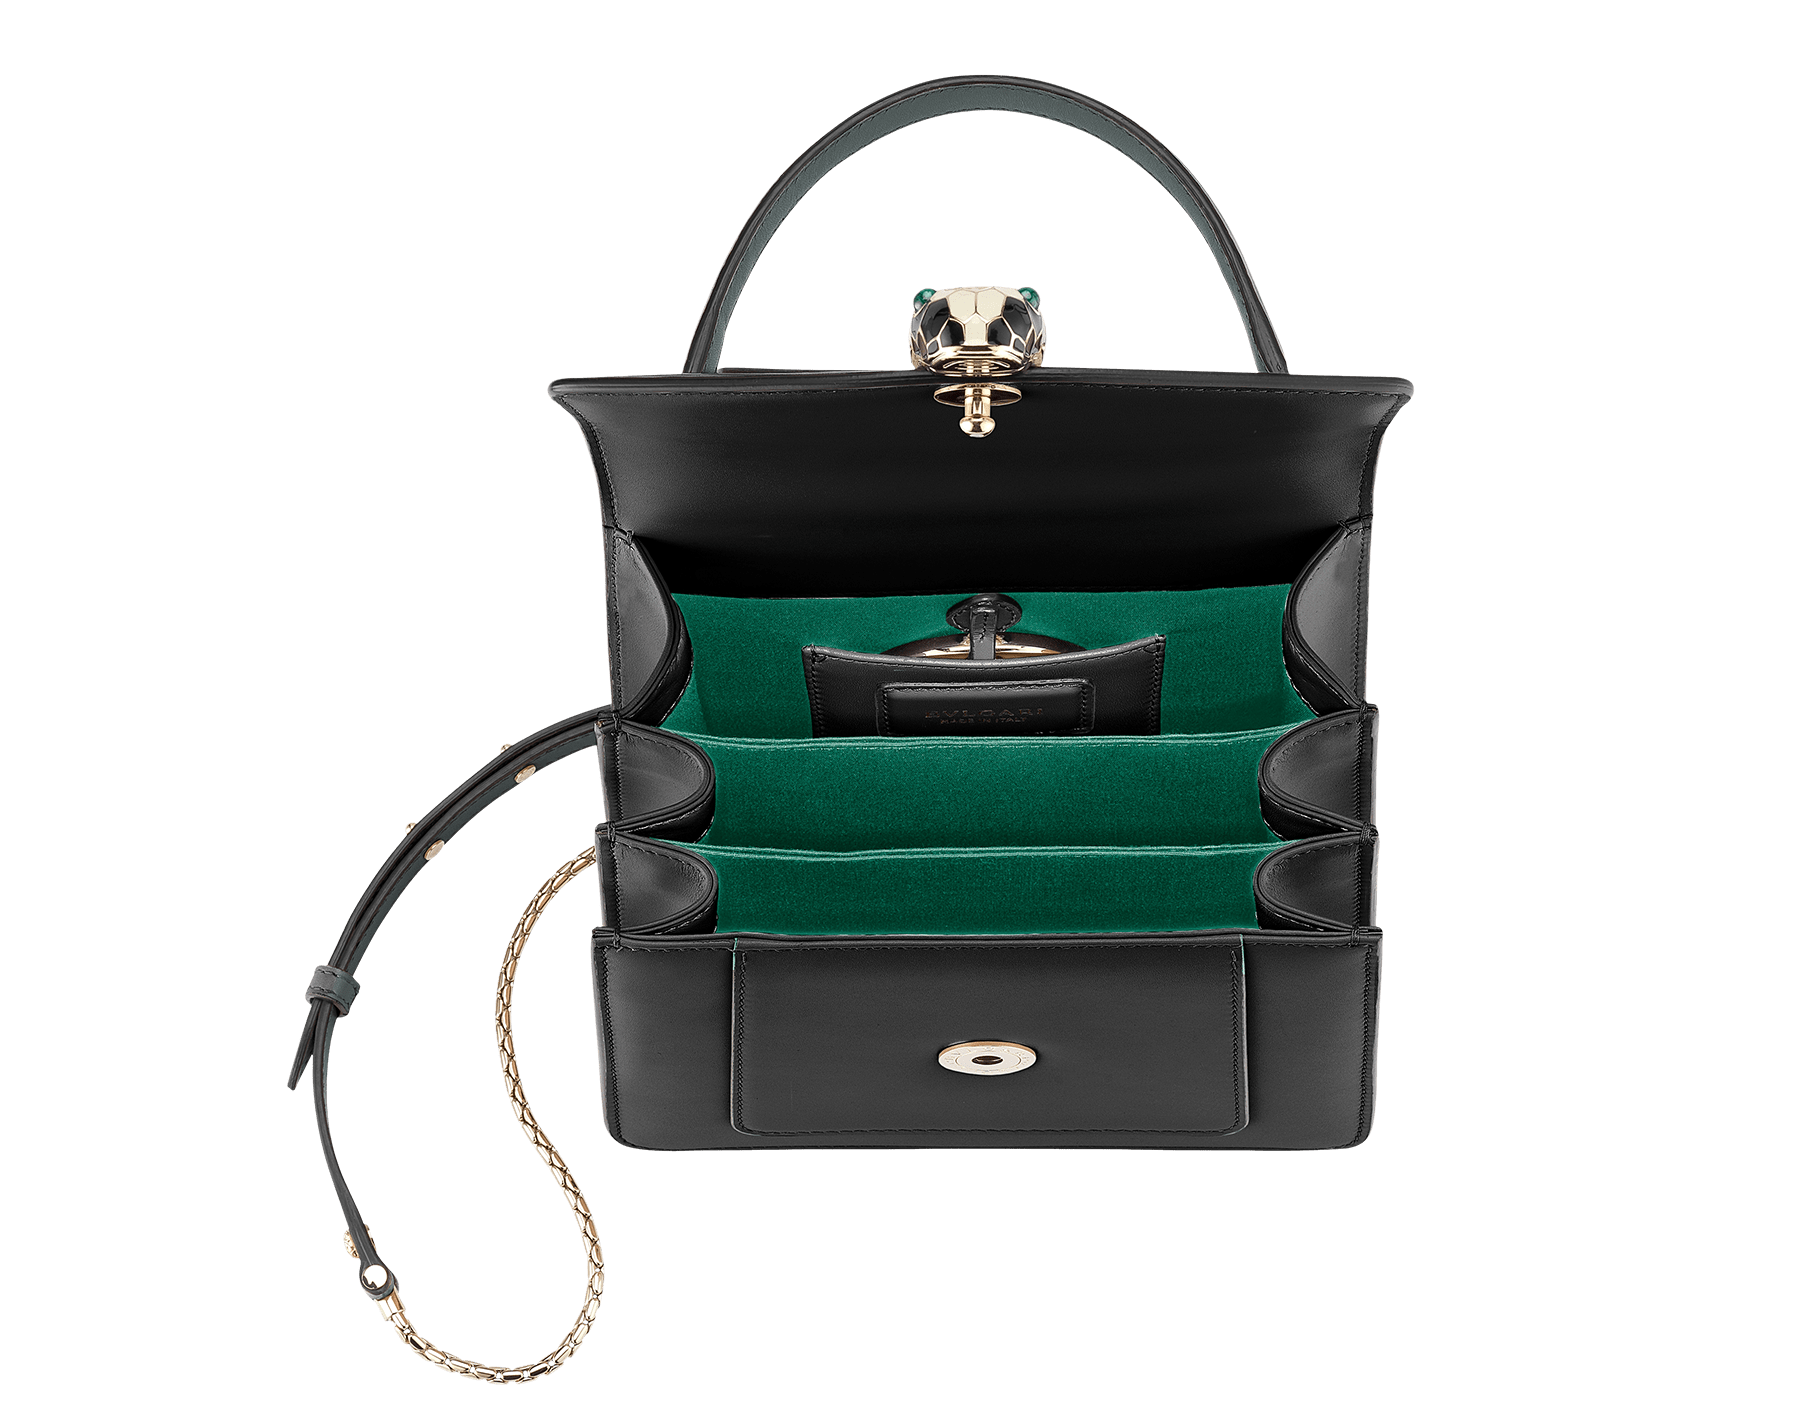 Flap cover bag Serpenti Forever in black calf leather and jade green gros-grain lining.Brass light gold plated hardware and snake head closure in black and white enamel with eyes in green malachite. 284537 image 4